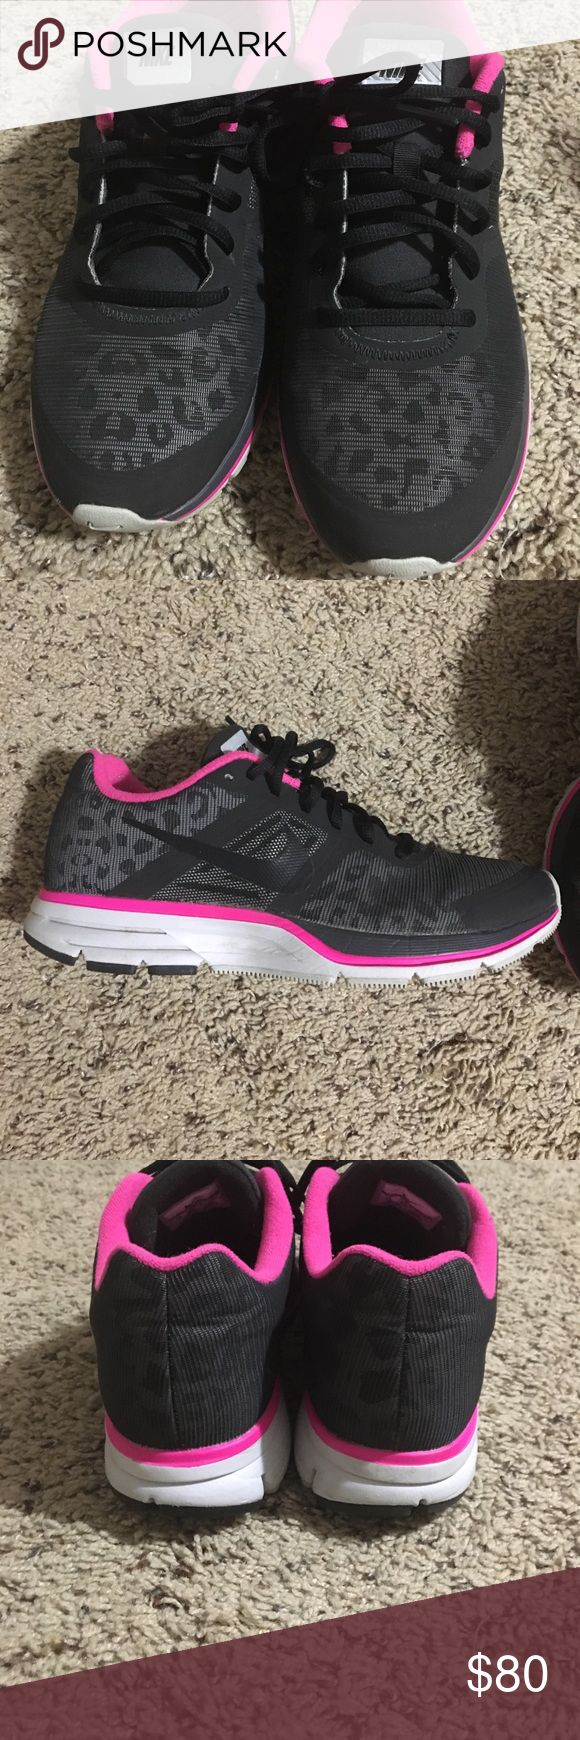 Leopard print Nike H2O repel Pegasus 30 Gently used. Worn a hand full of times. Size 10 tts women's Nike leopard print shoes Nike Shoes Athletic Shoes